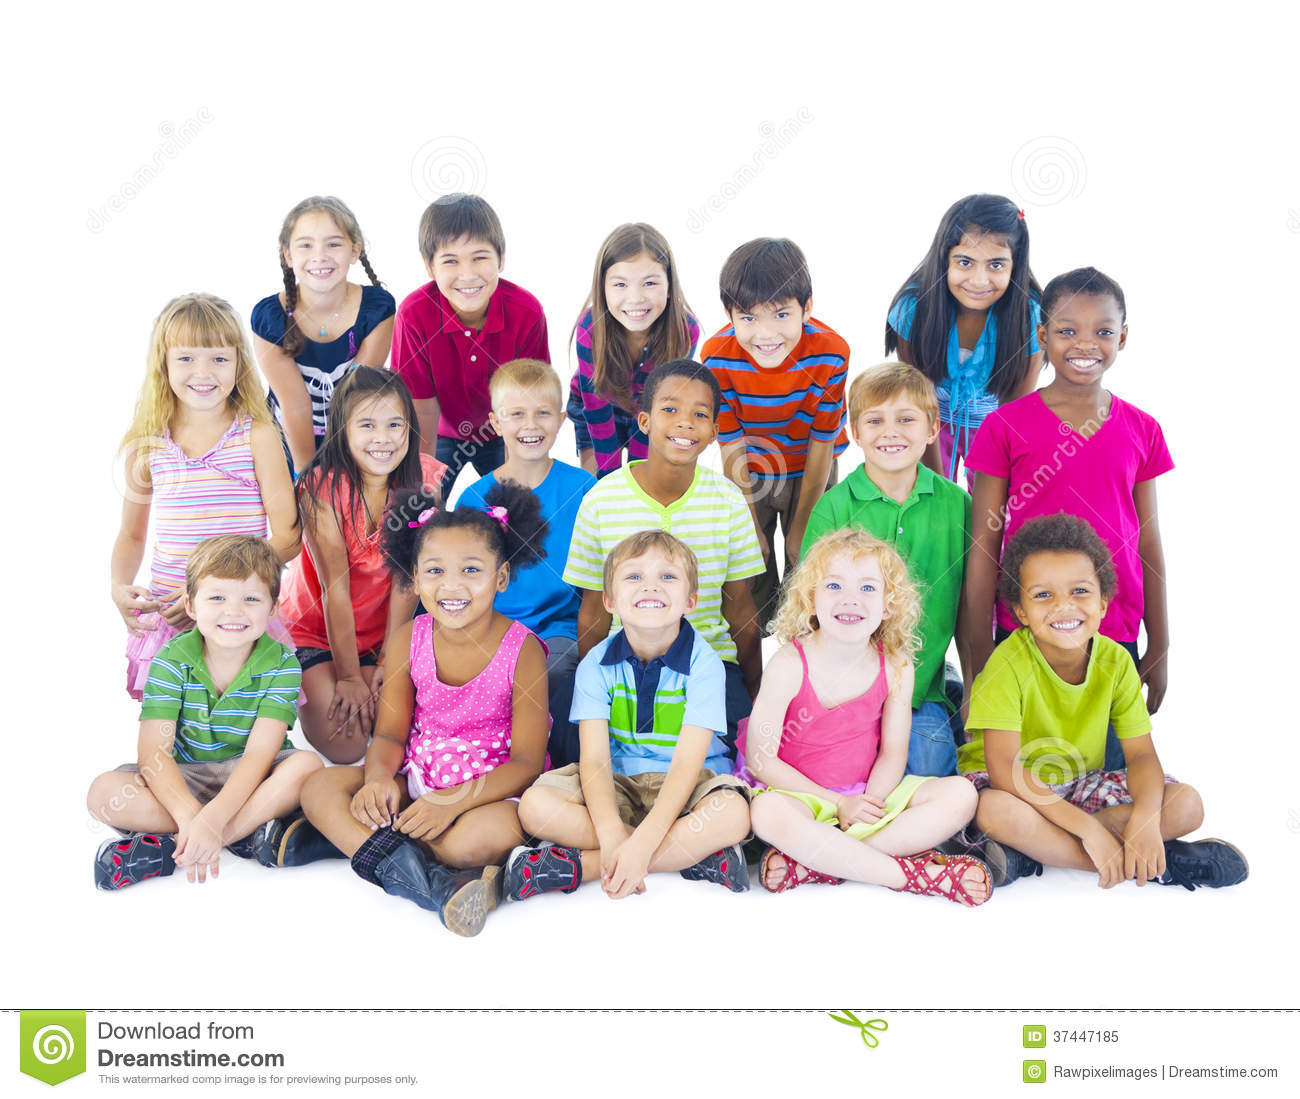 the diversity of children's backgrounds in